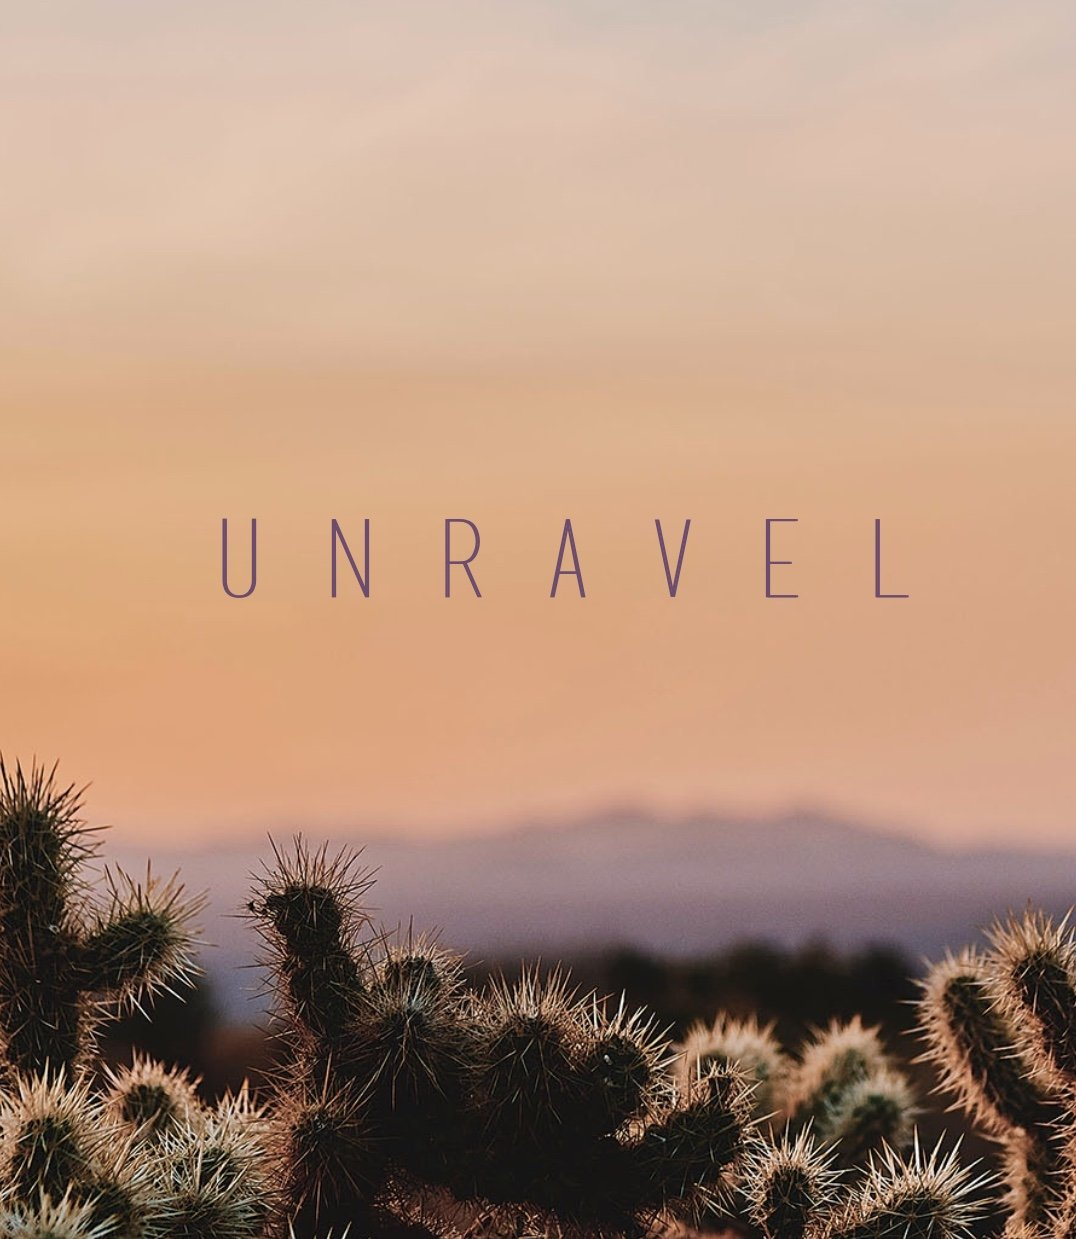 UNRAVEL: Women's Retreat in Joshua Tree with Denise Chang and Stephanie Kang